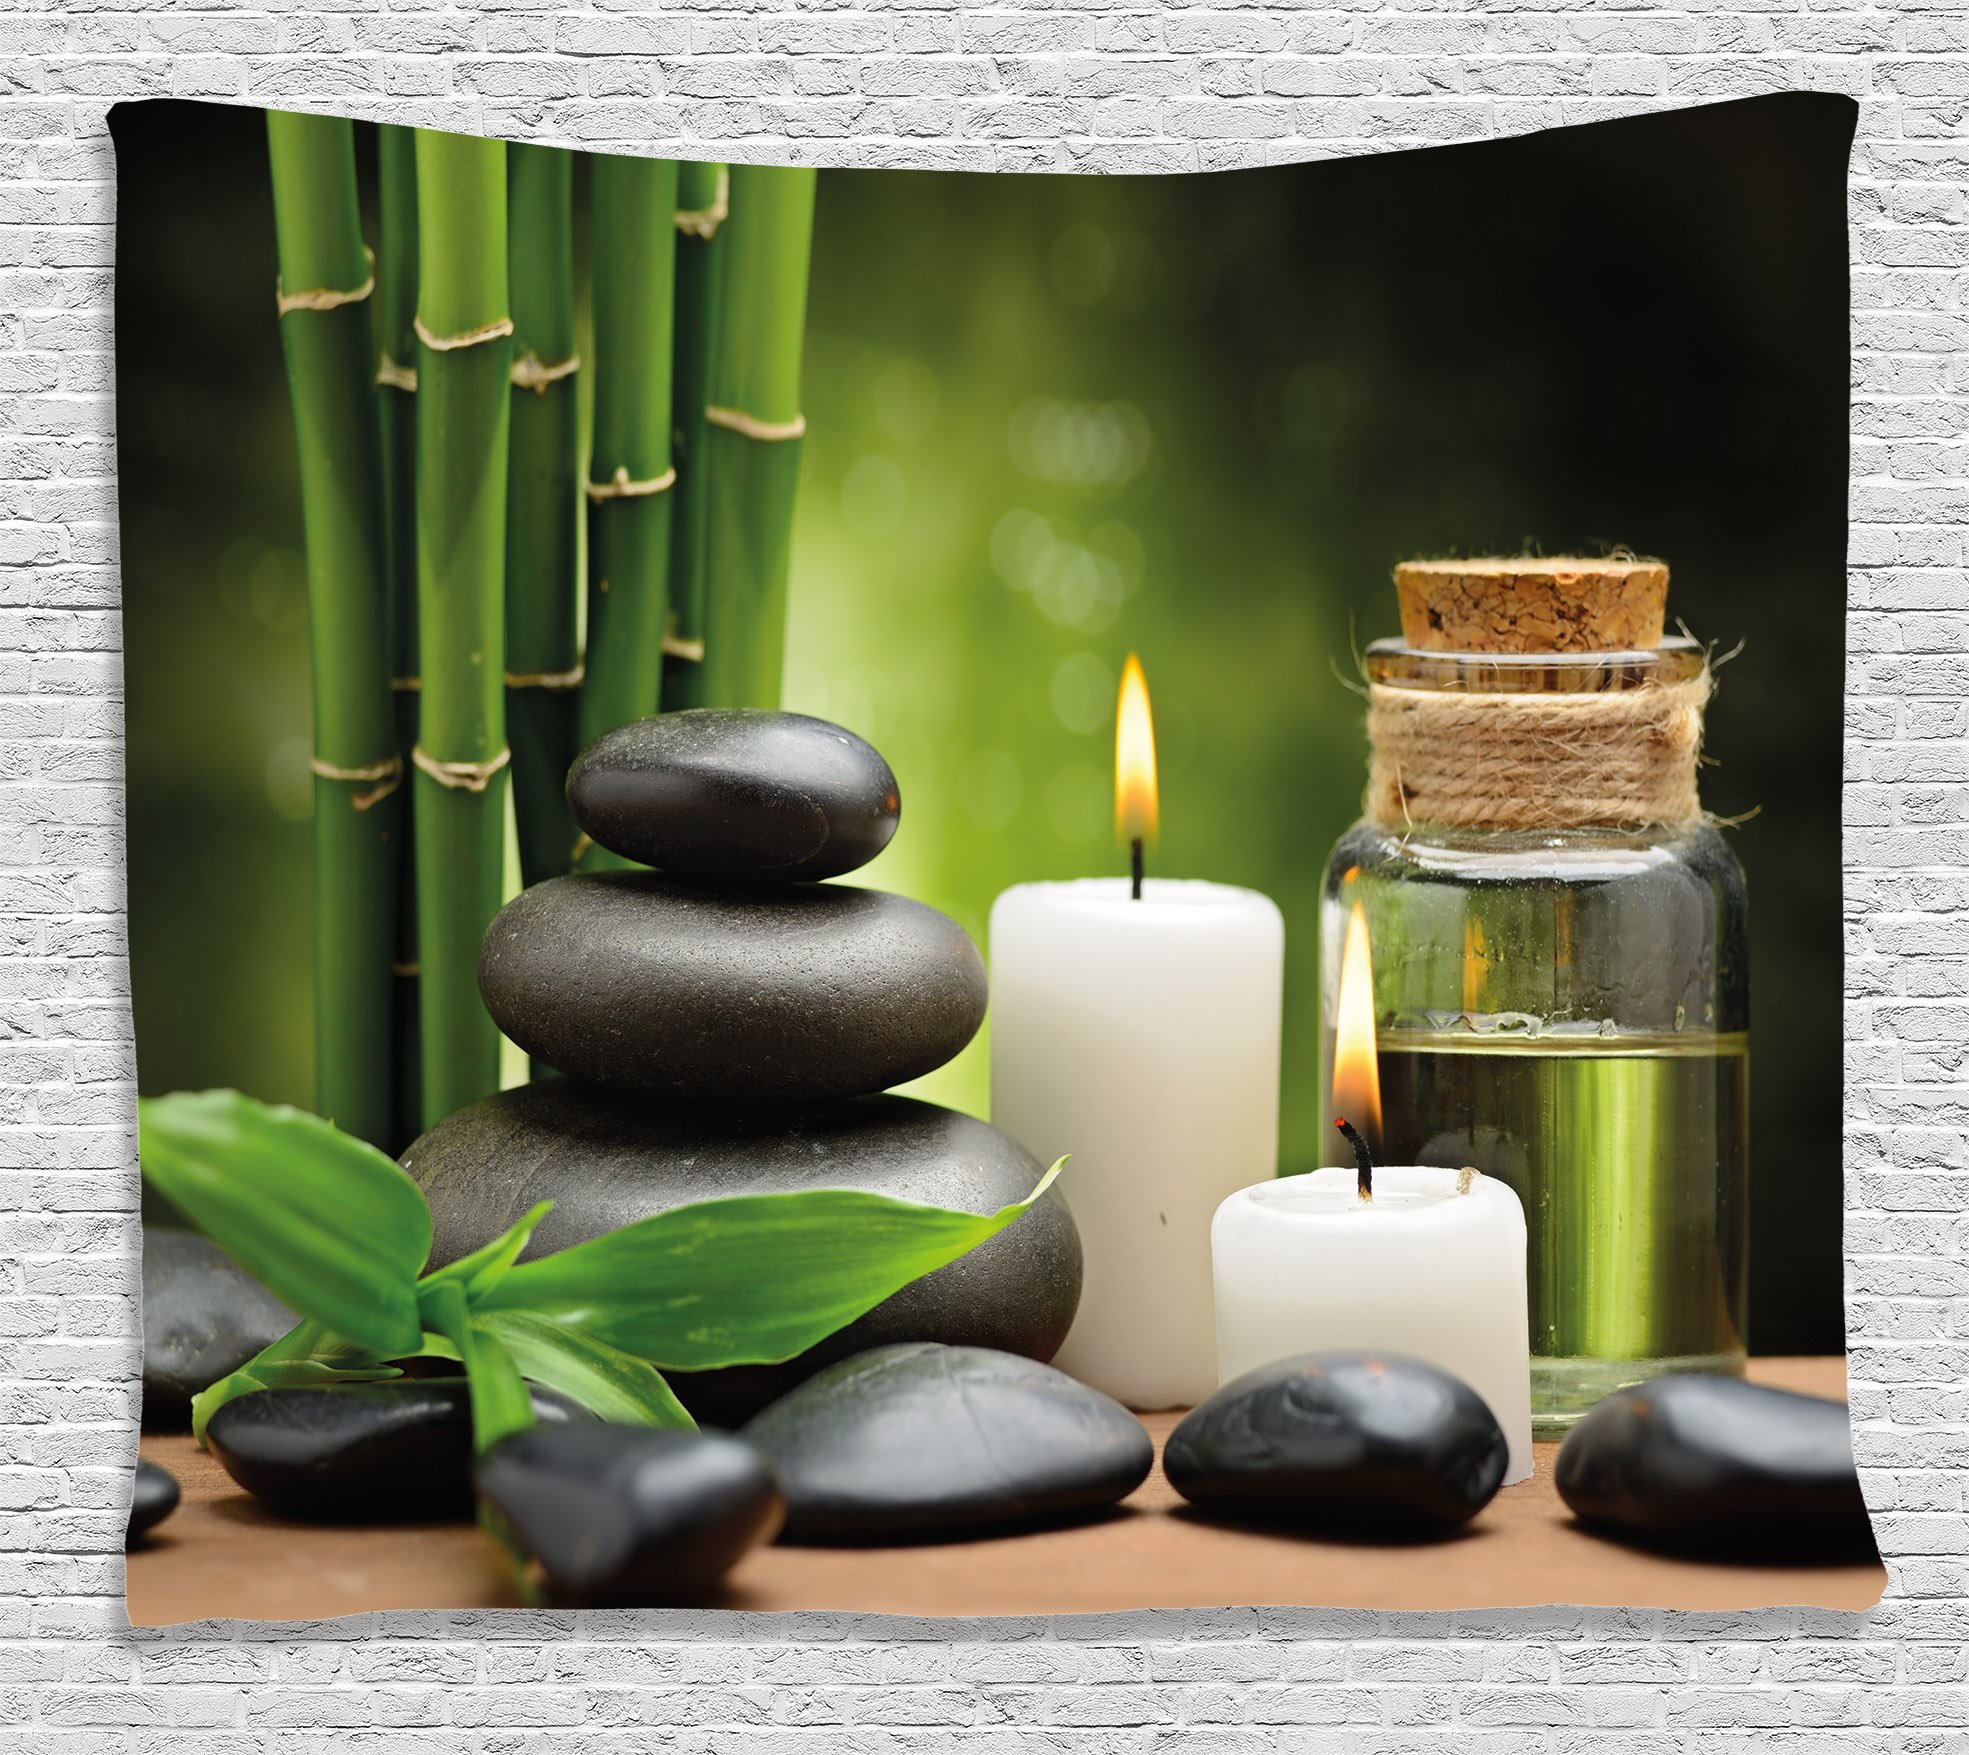 Ambesonne Spa Decor Tapestry, Hot Massage Rocks Combined with Candles and Scents Landscape of Bamboo, Wall Hanging for Bedroom Living Room Dorm, 80 W X 60 L inches, Green White and Black